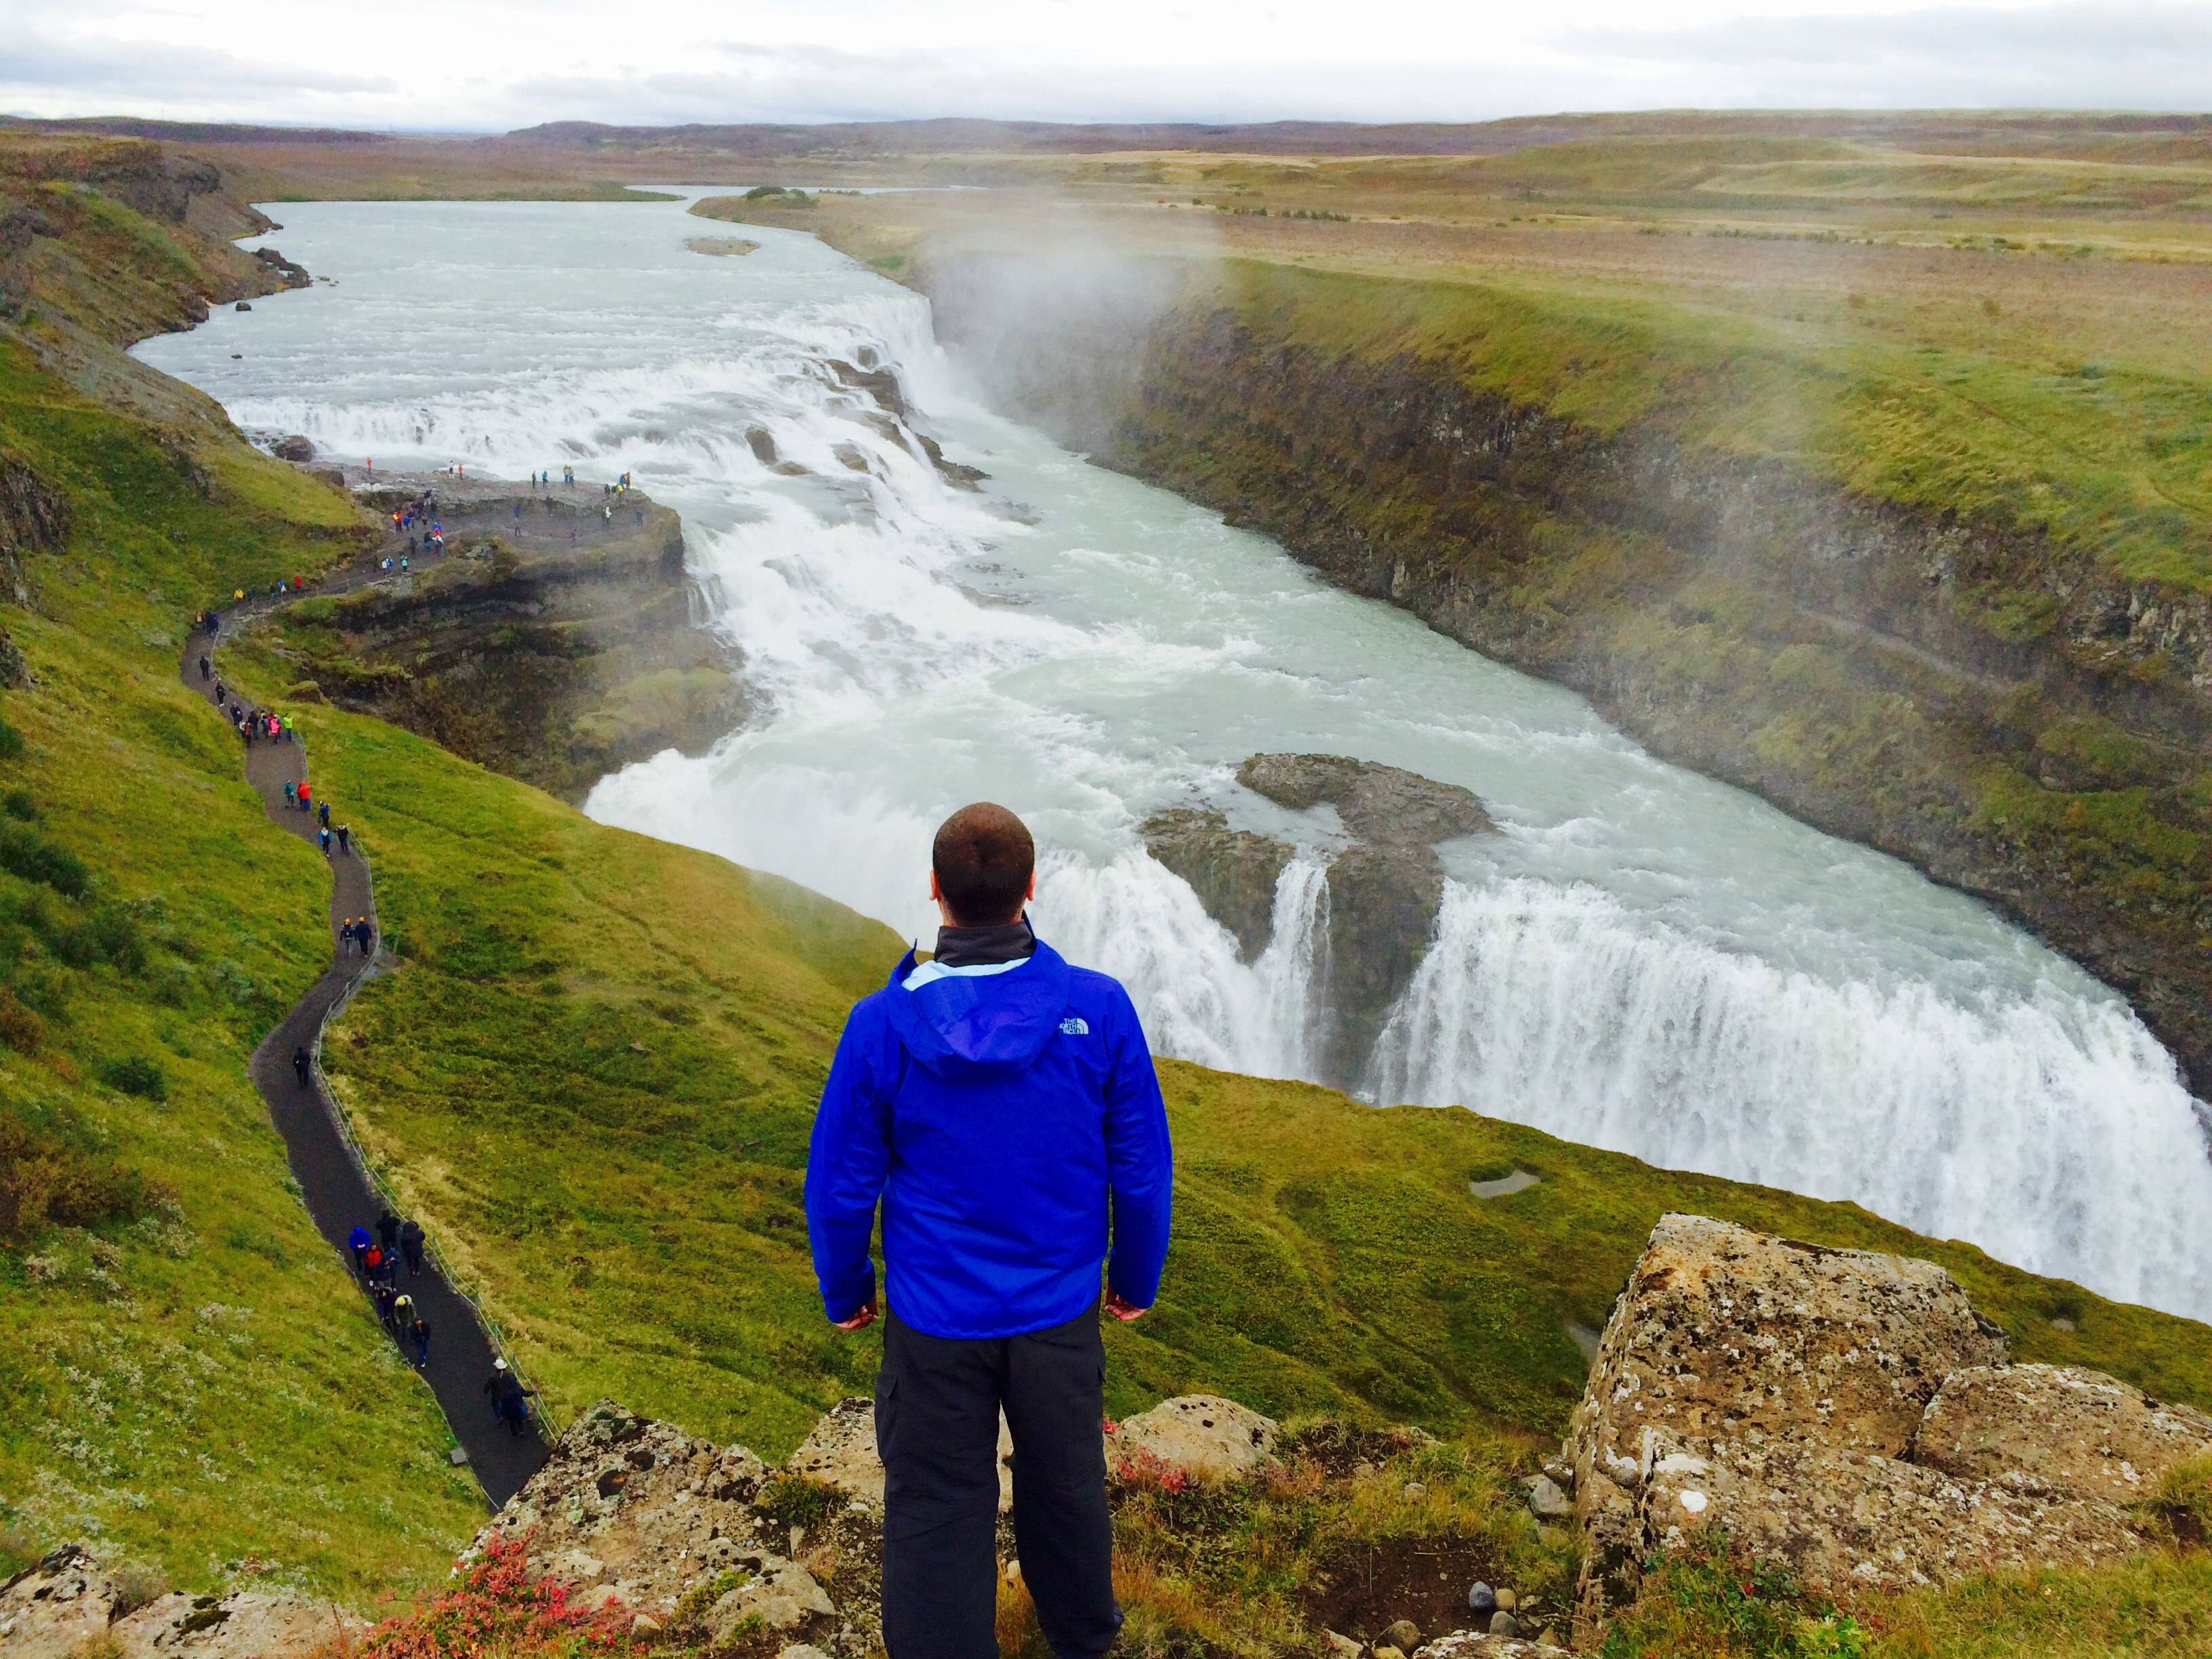 gullfoss_an_iconic_waterfall_of_iceland